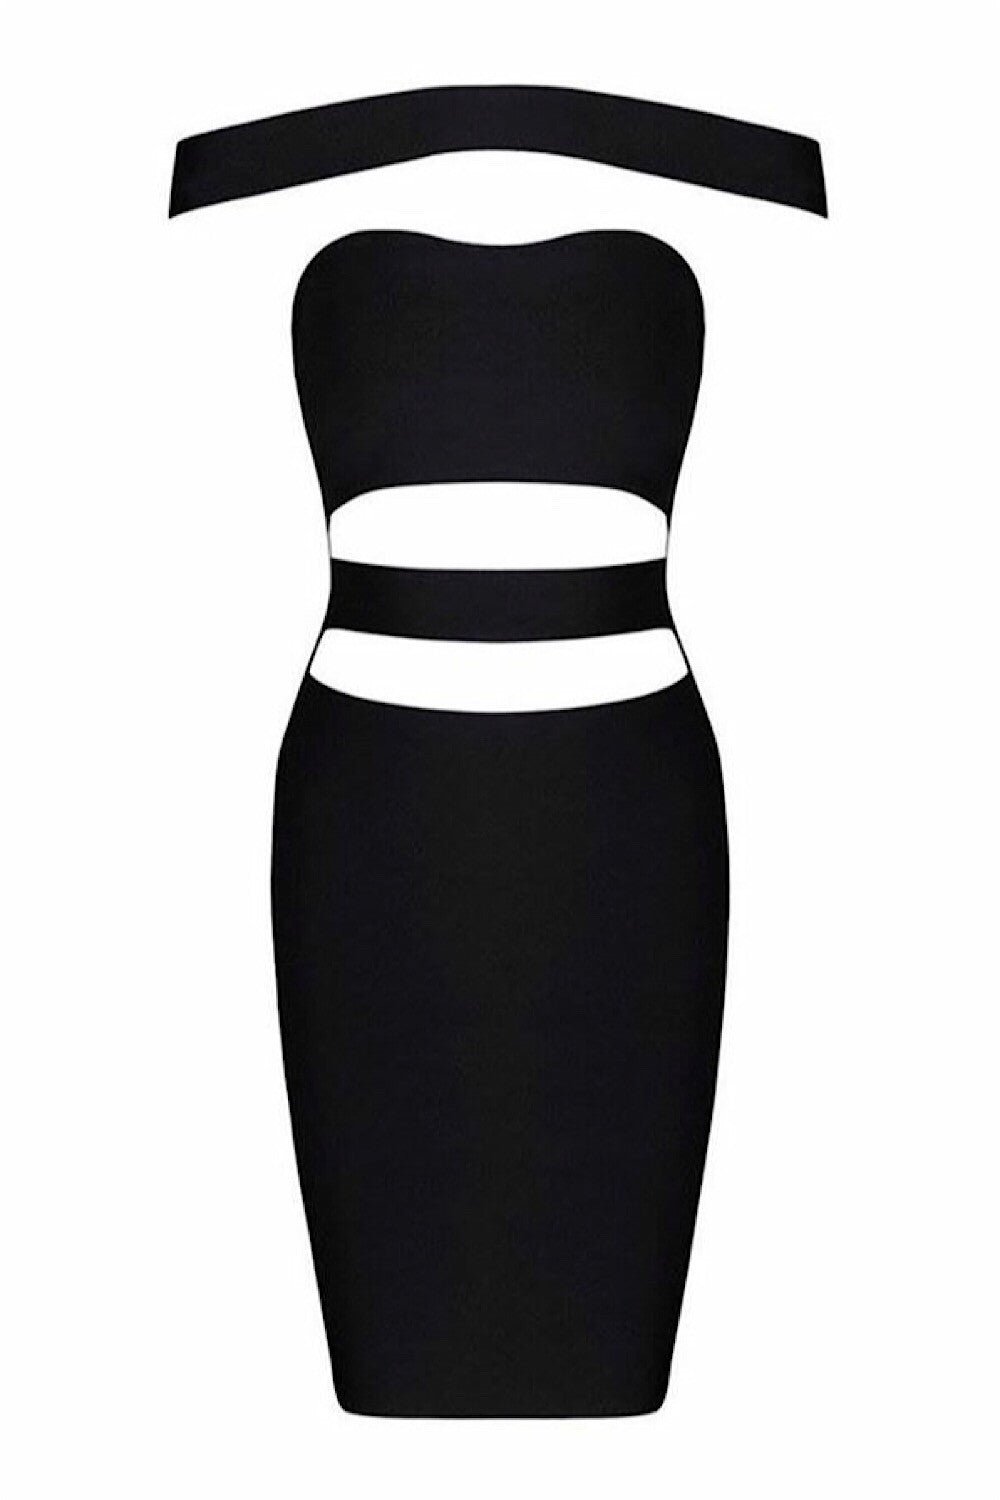 Kylie Jenner Black Bandage Dress